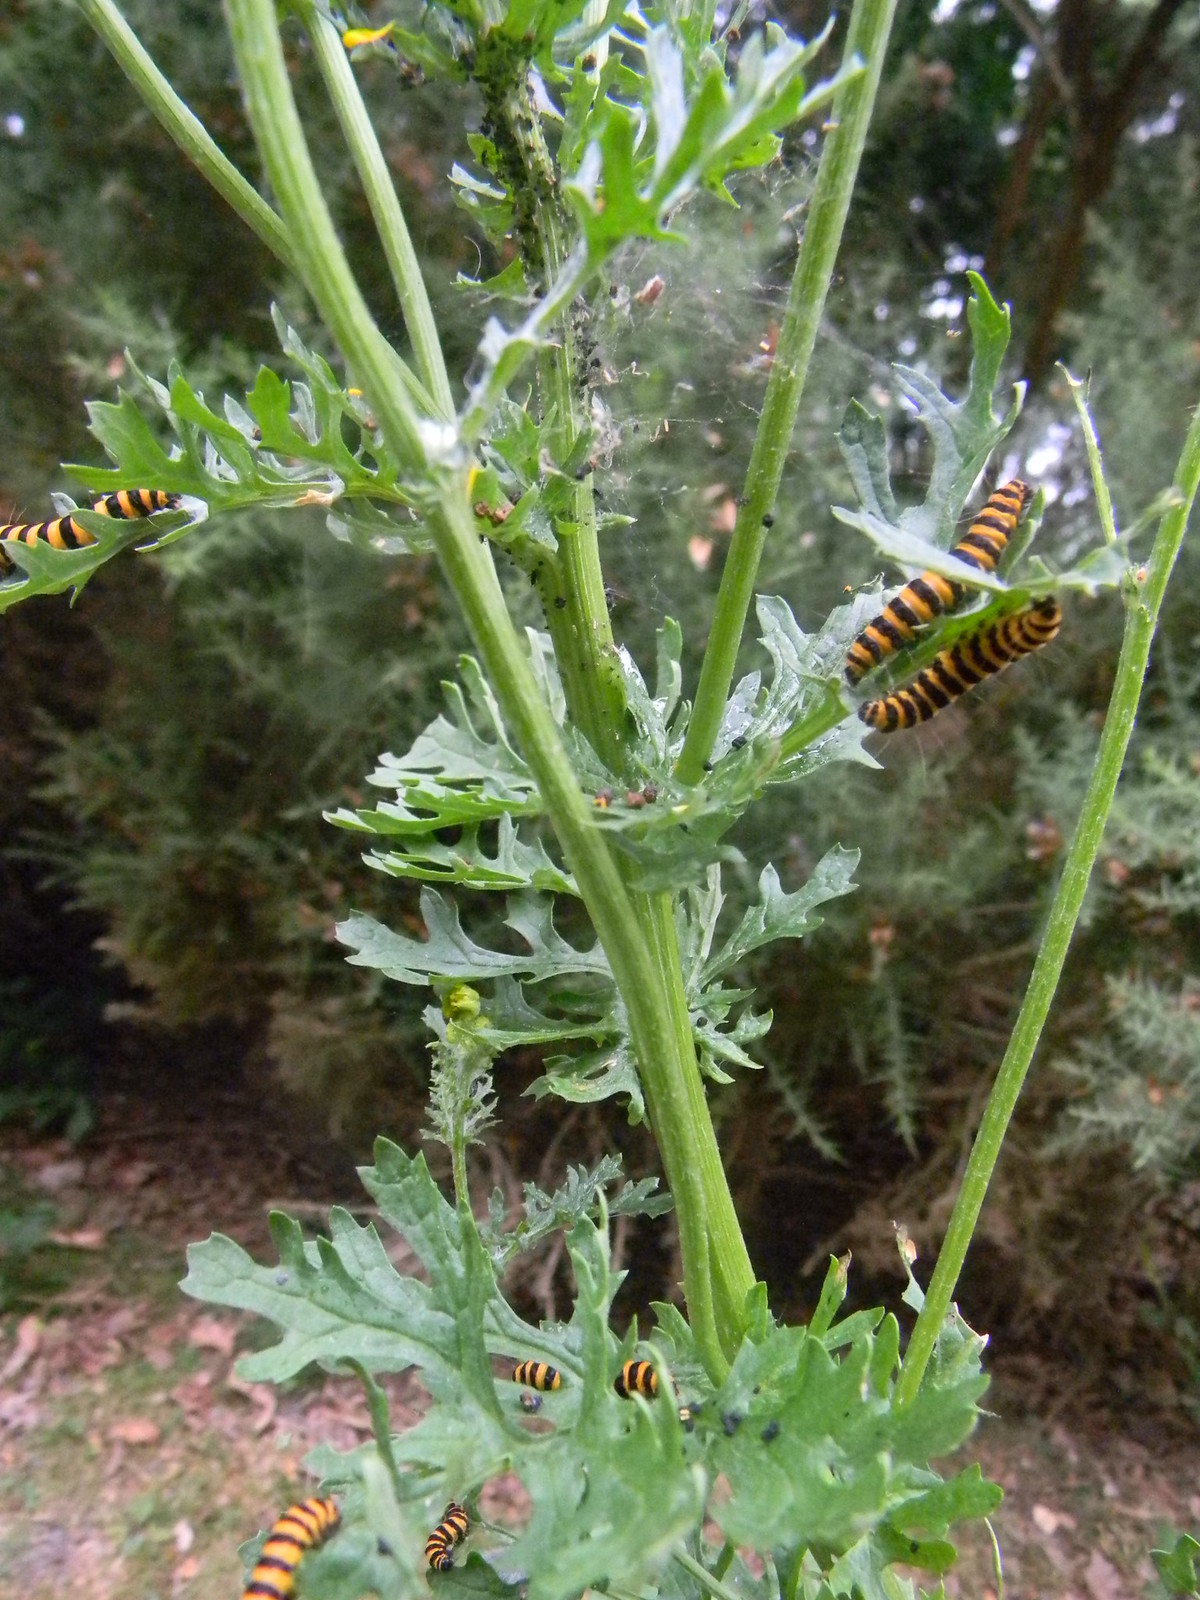 "Cinnabar moth caterpillars on ragwort They absorb the ragwort toxins. The yellow and black says ""don't eat"". (Wasn't going to anyway!) Mortimer to Aldermaston p.s. when they run out of ragwort, they eat each other!"